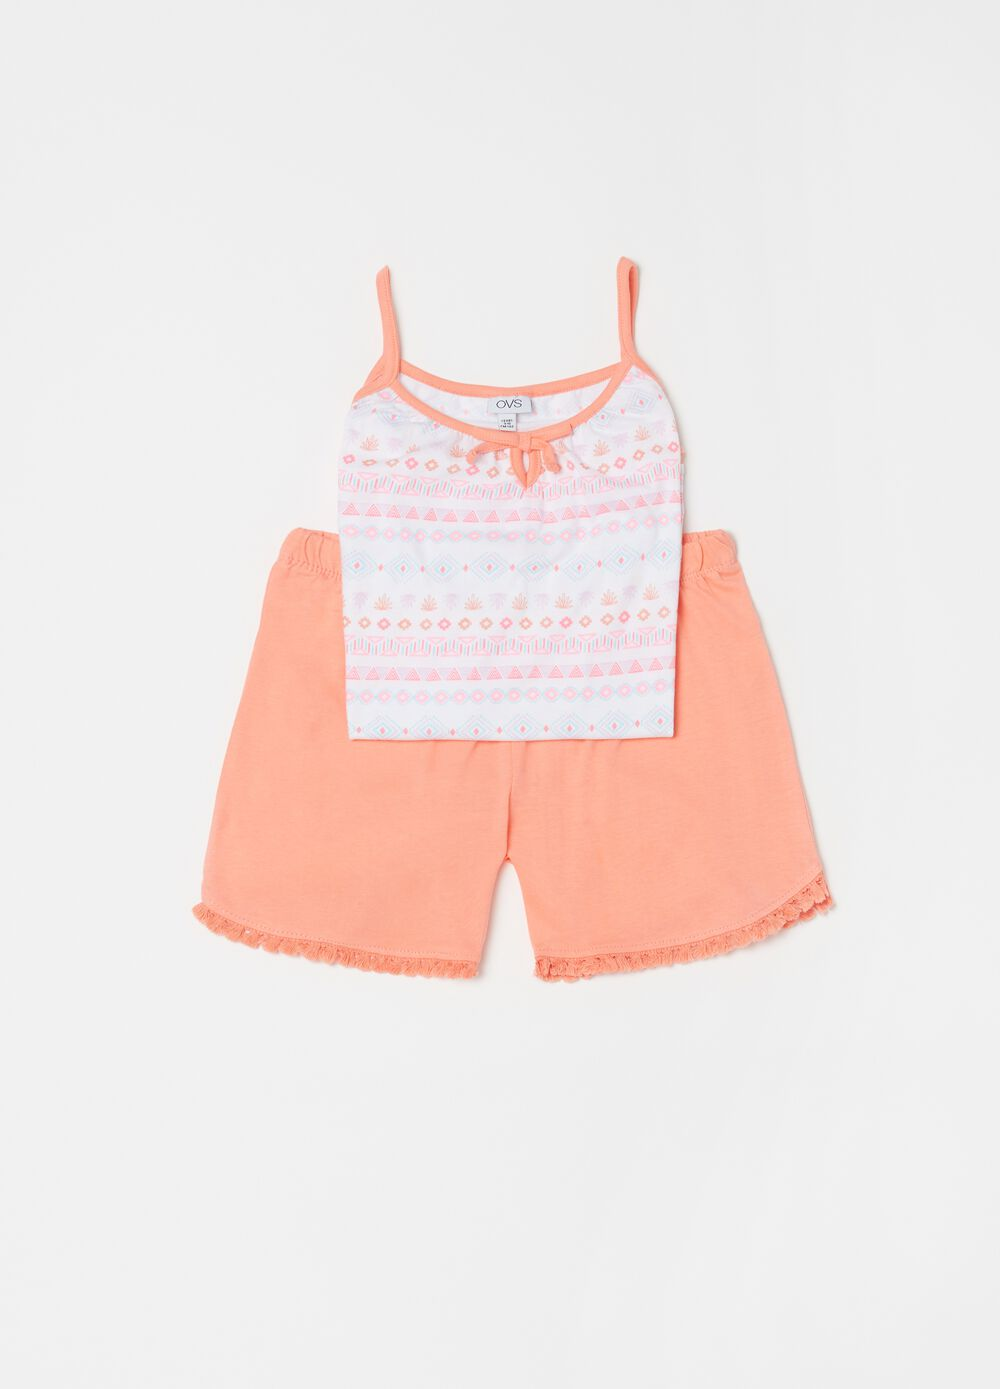 Pyjamas with patterned top and solid colour shorts